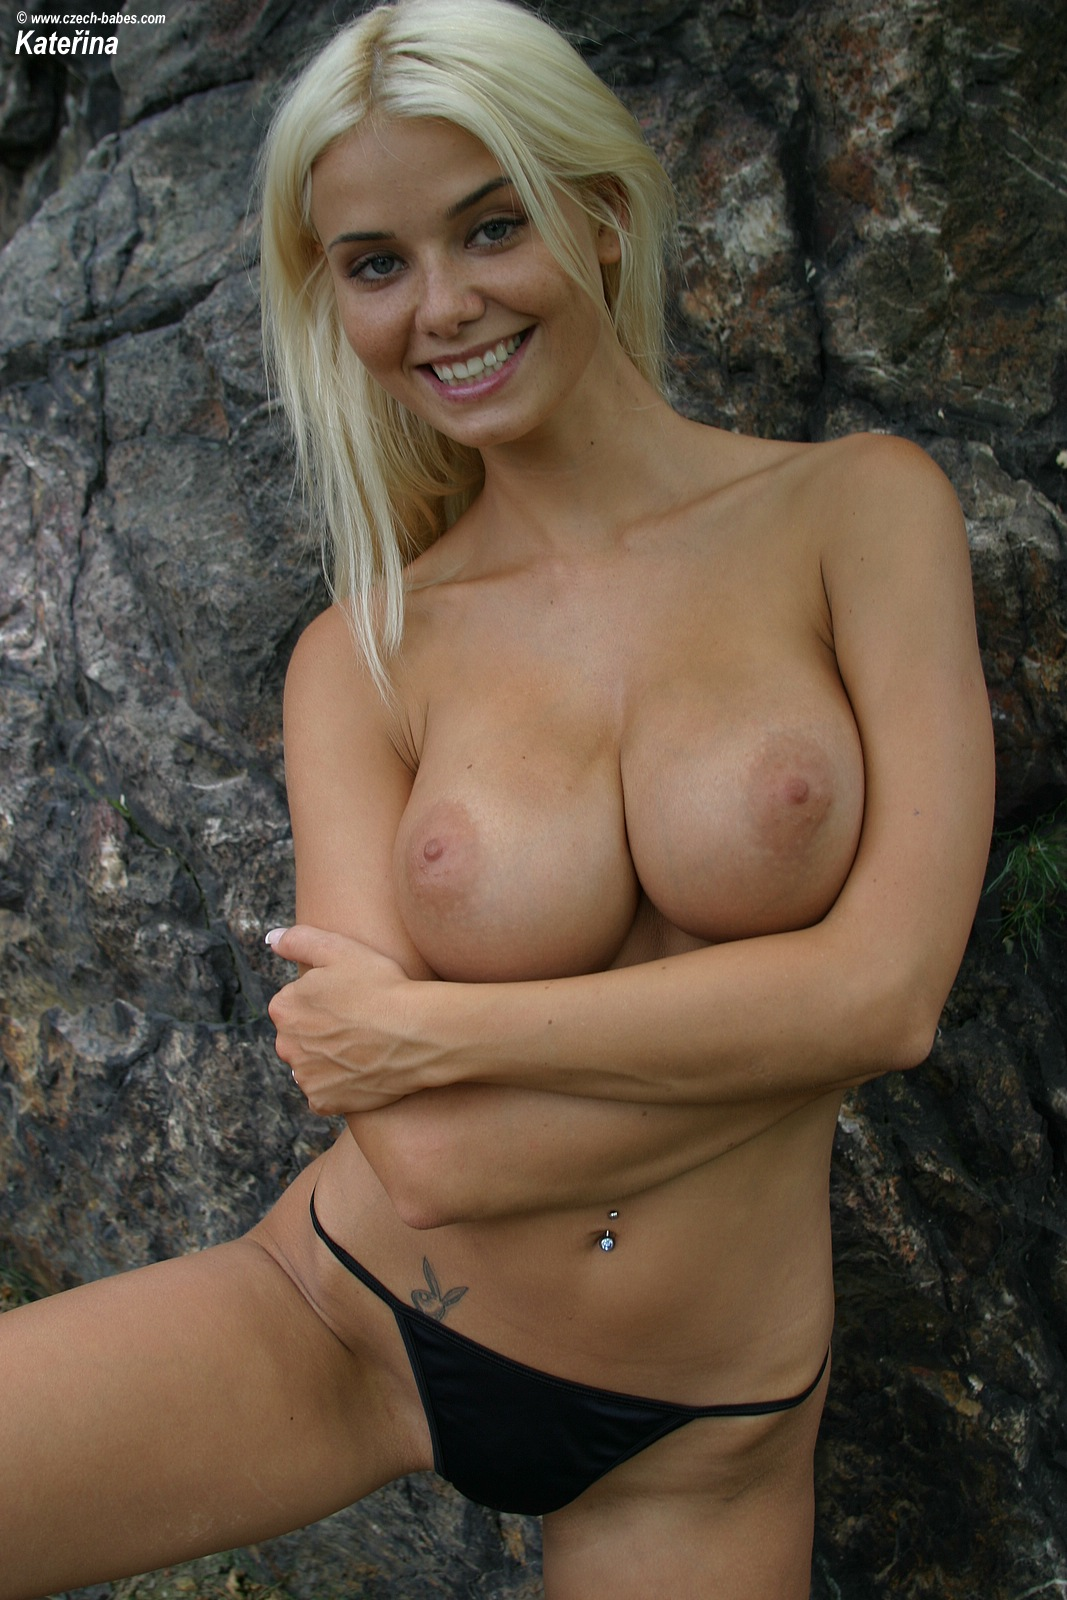 katerina-blonde-boobs-flip-flops-outdoor-naked-17